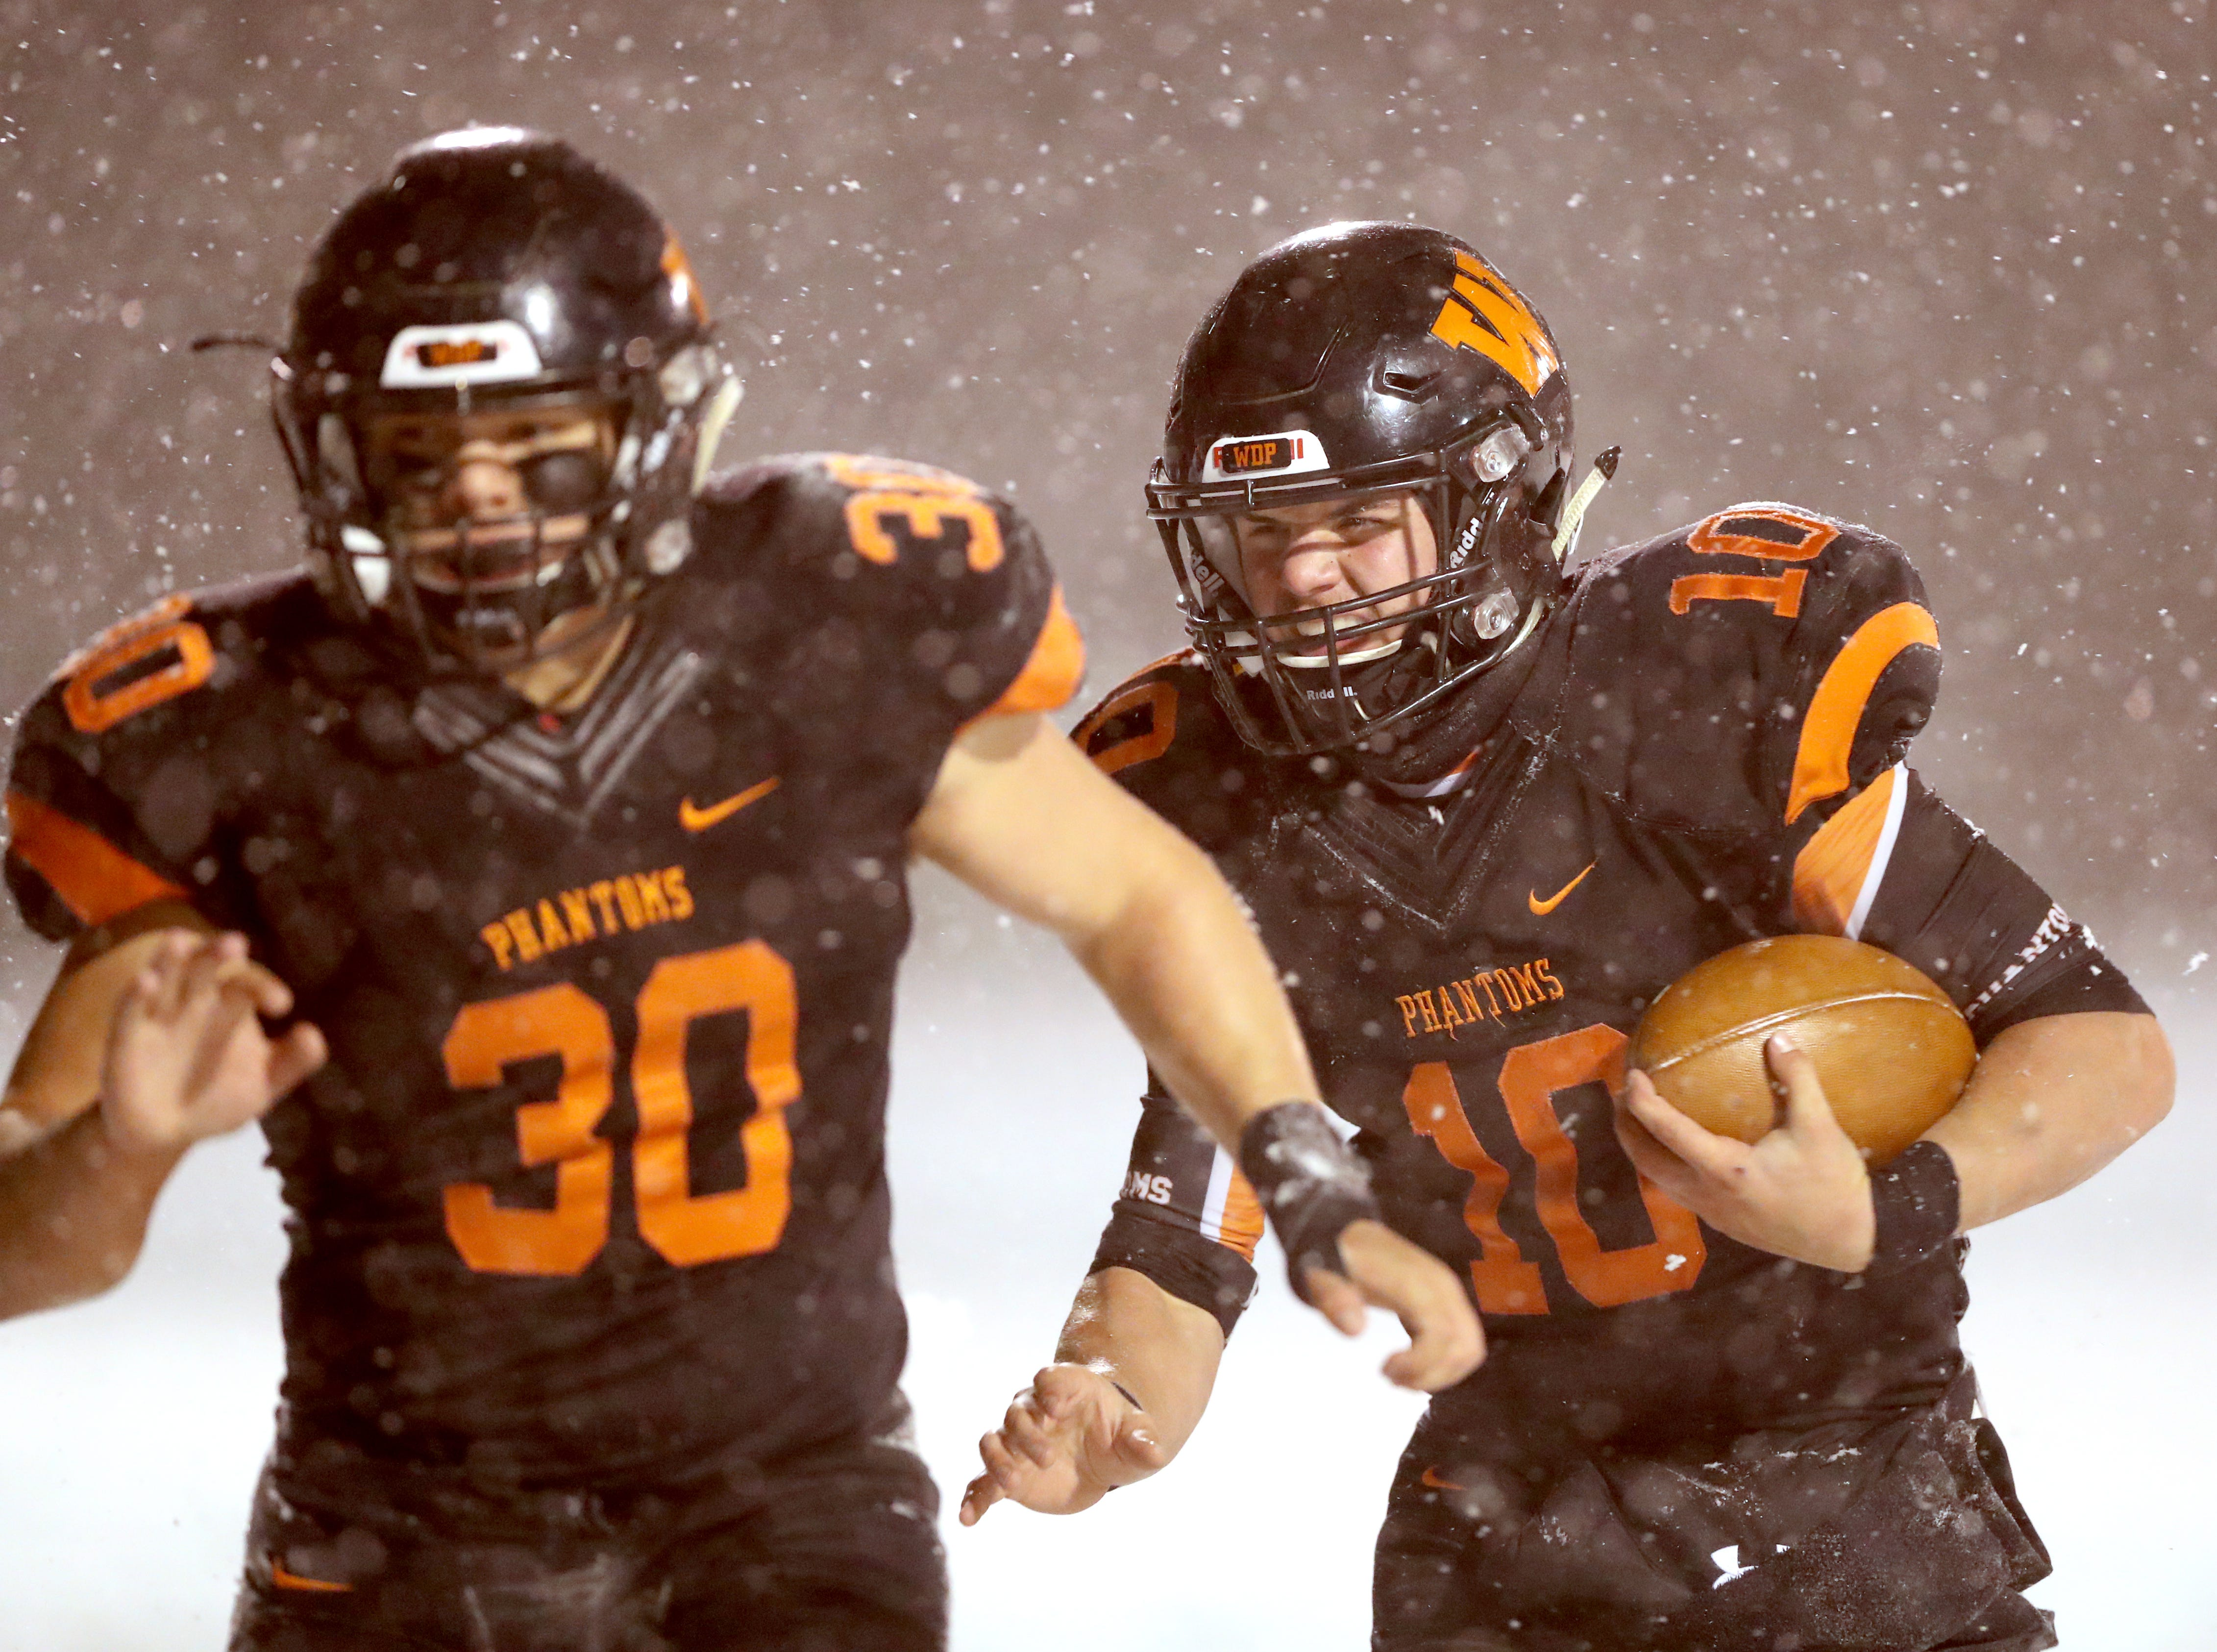 West De Pere's Josh Blount follows the block of Cody Cavil for a touchdown against Rice Lake in the Division 3 Level 4  WIAA playoffs Friday, November 9, 2018 at DC Everest in Weston, Wis.